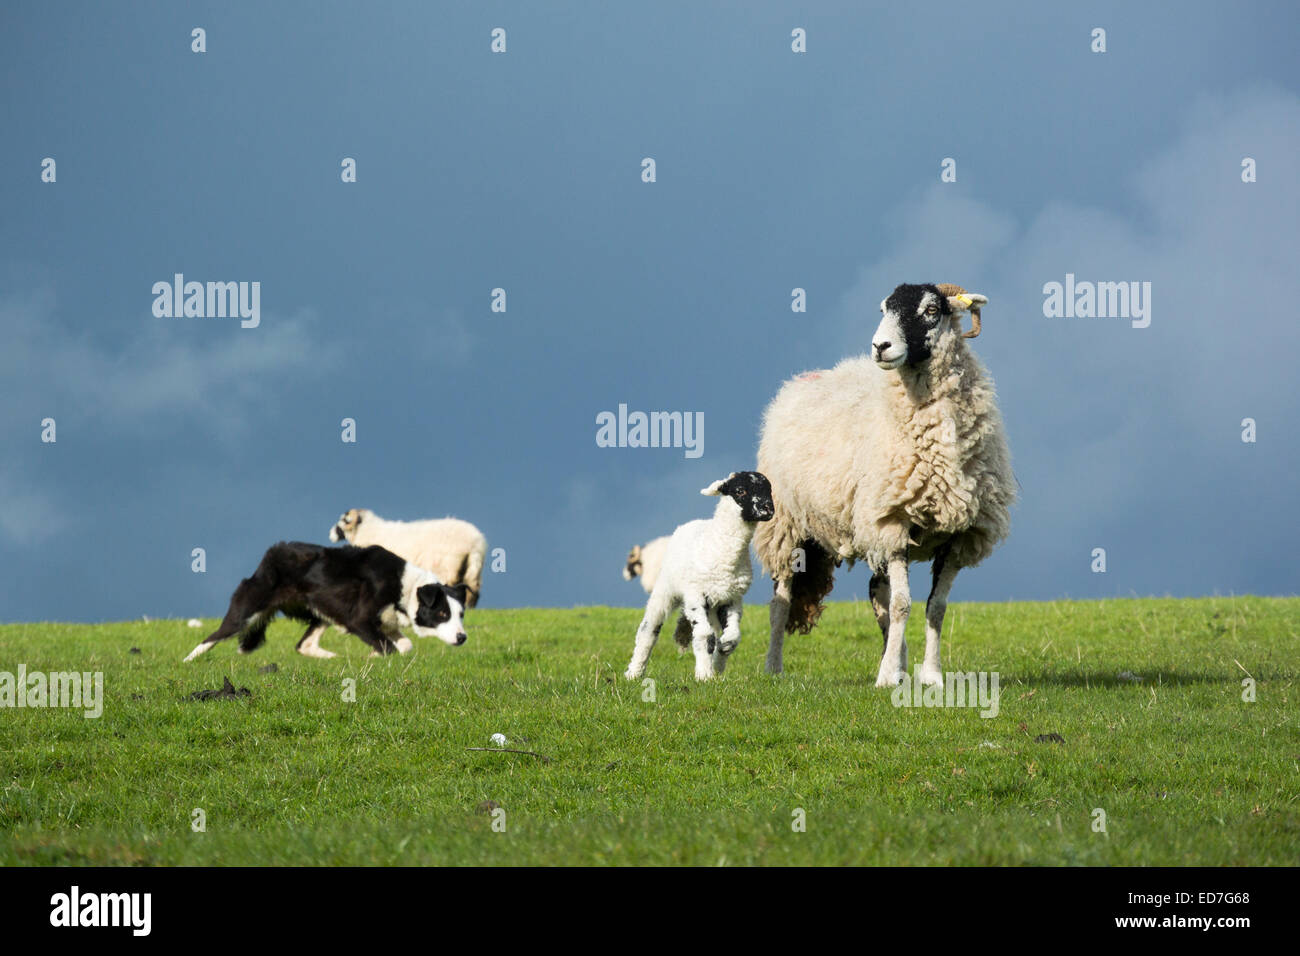 Border collie sheepdog working a ewe and lamb, Cumbria, UK - Stock Image